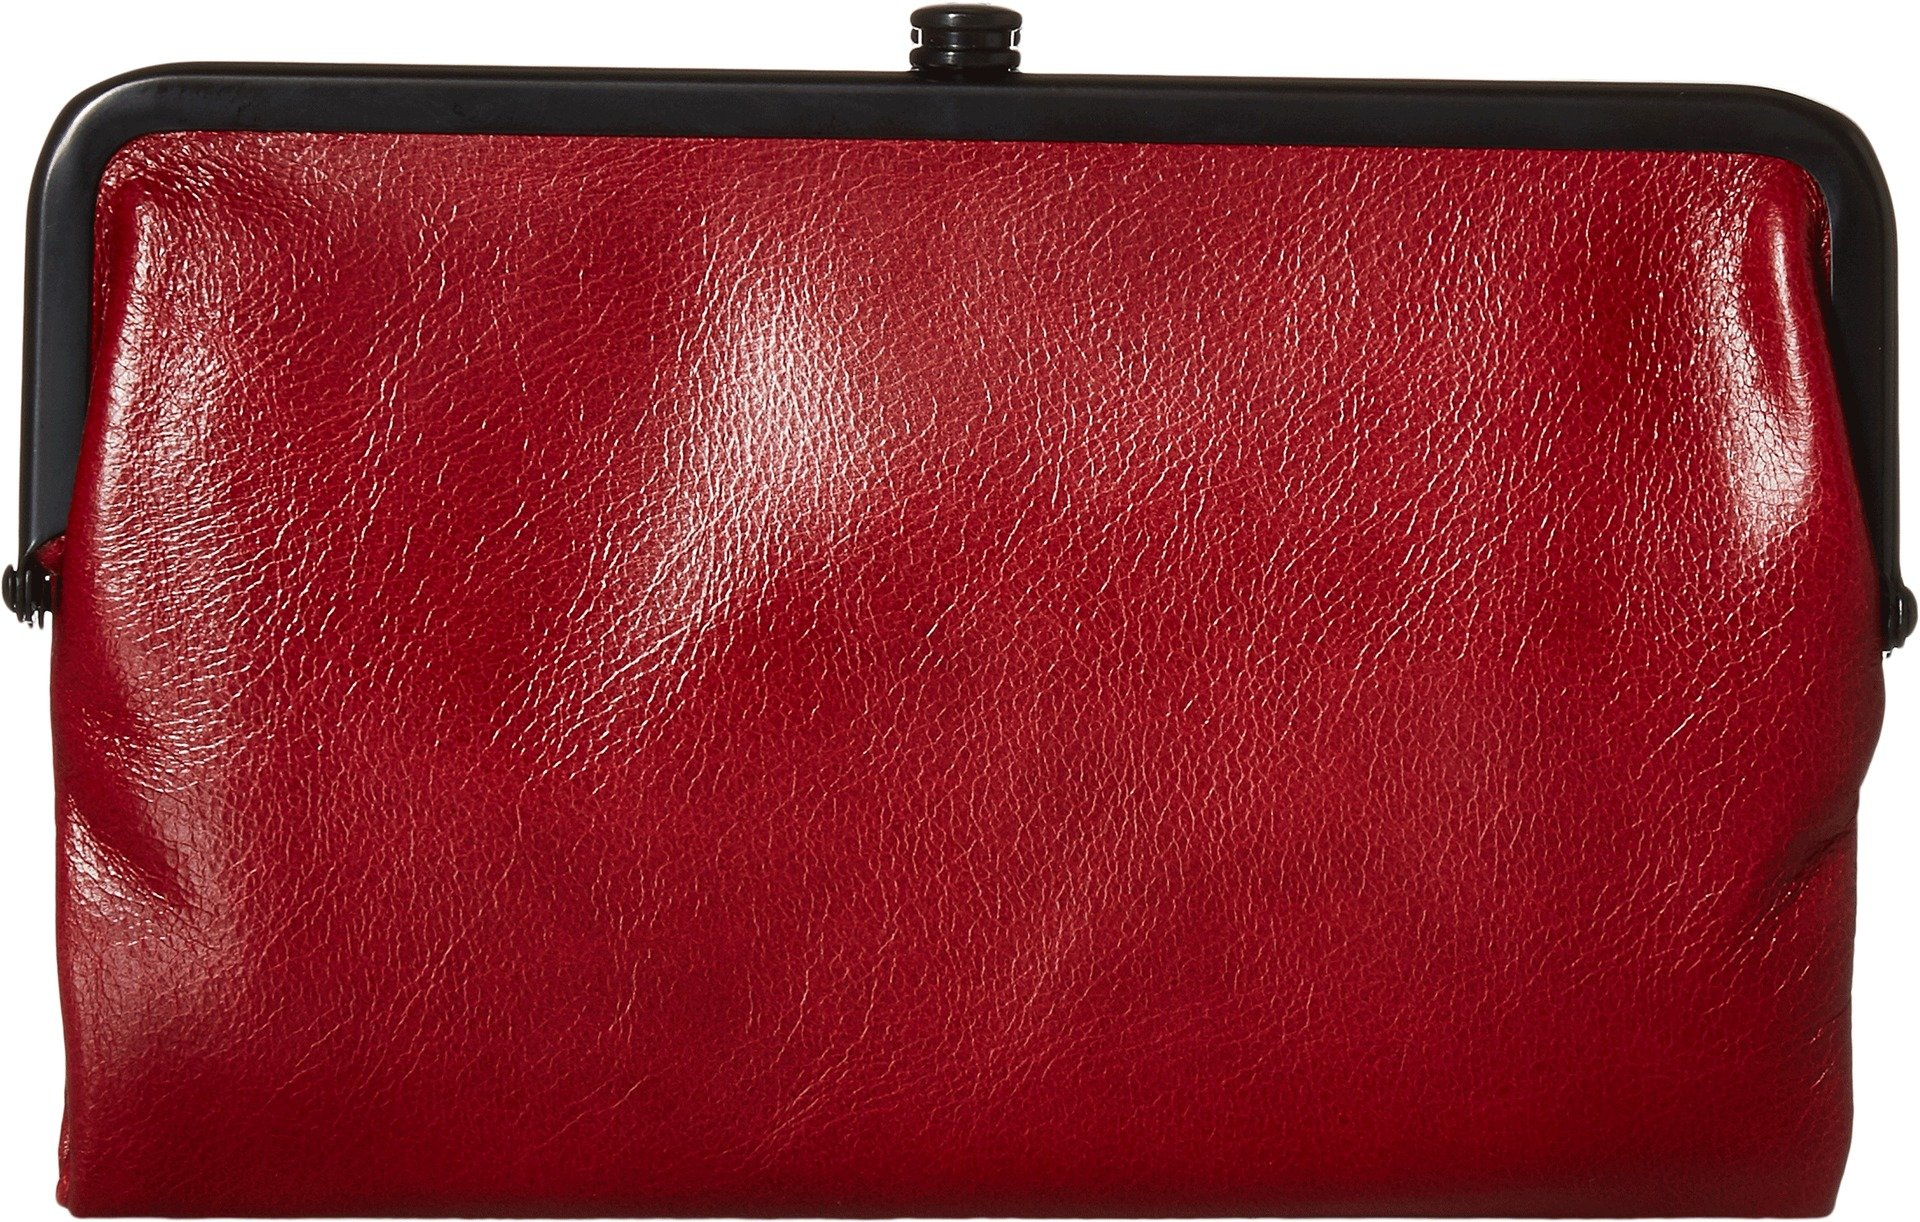 Hobo Womens Glory Vintage Leather Clutch Wallet (Cardinal)